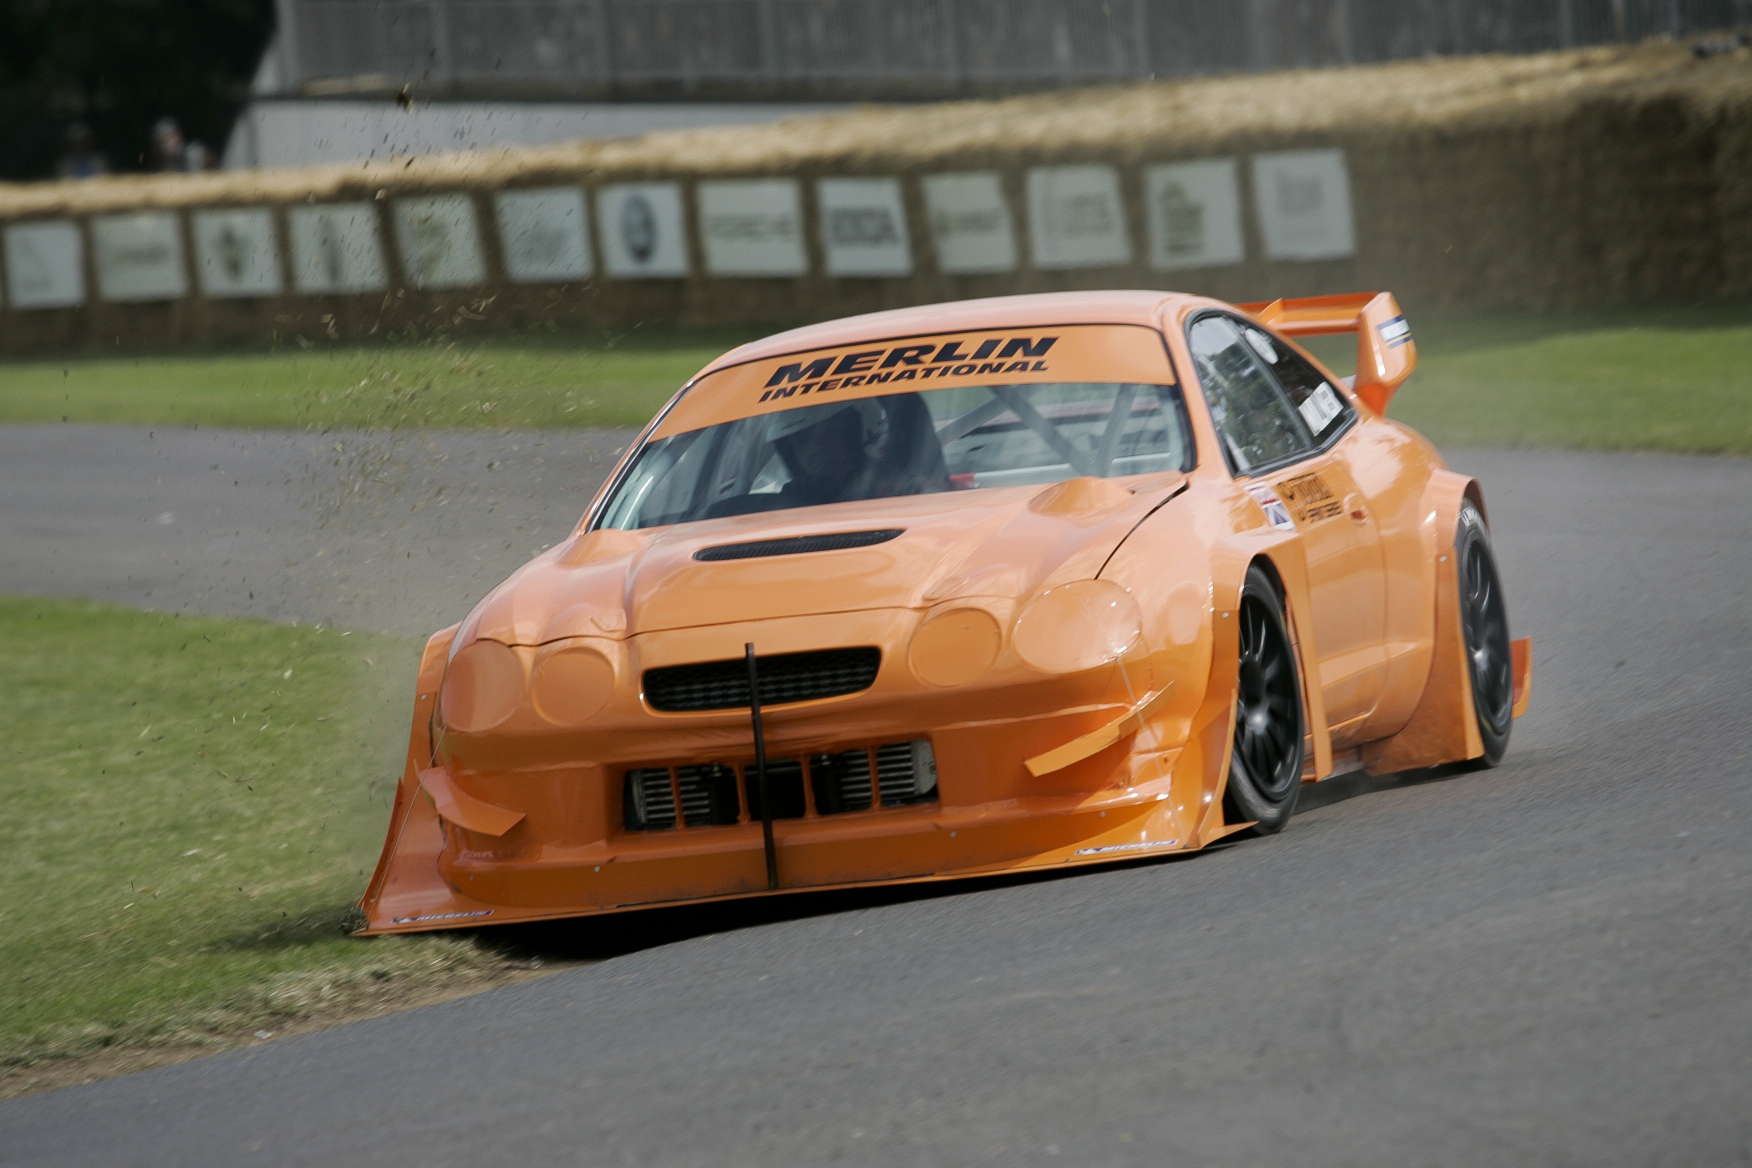 850hp Toyota Celica Is Fastest Hill Climber at 2011 Goodwood